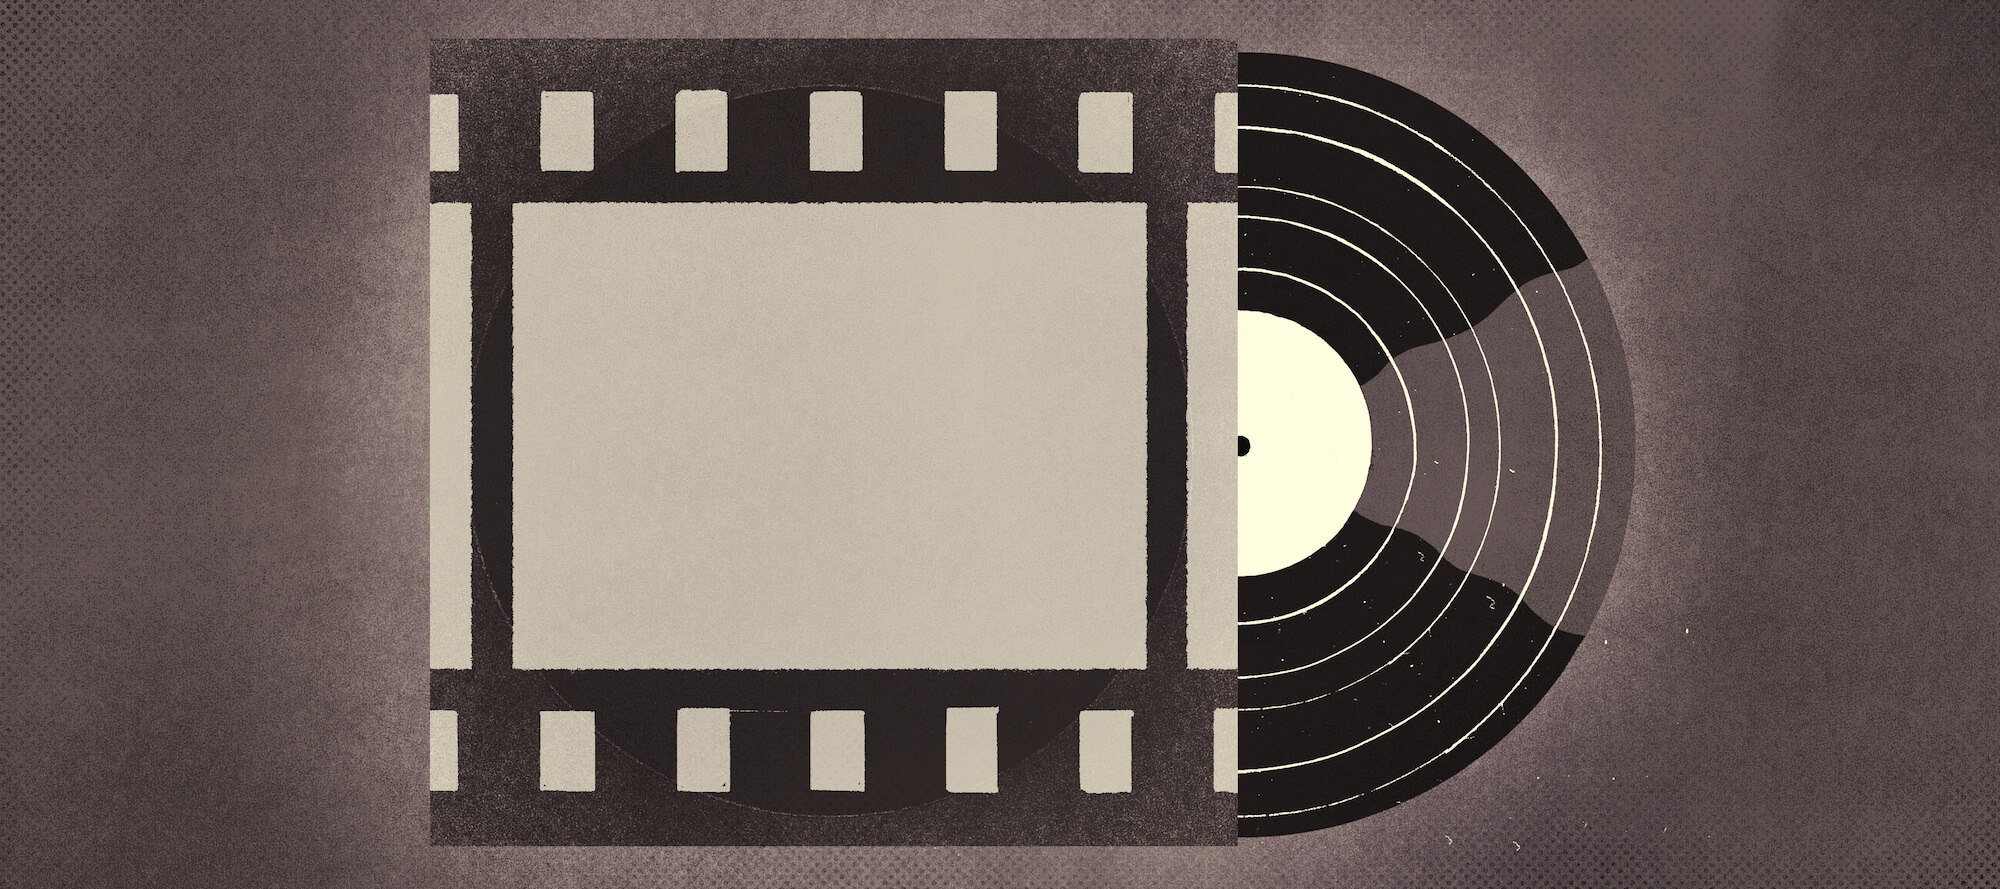 The 12 best soundtracks of 2017 - The Vinyl Factory